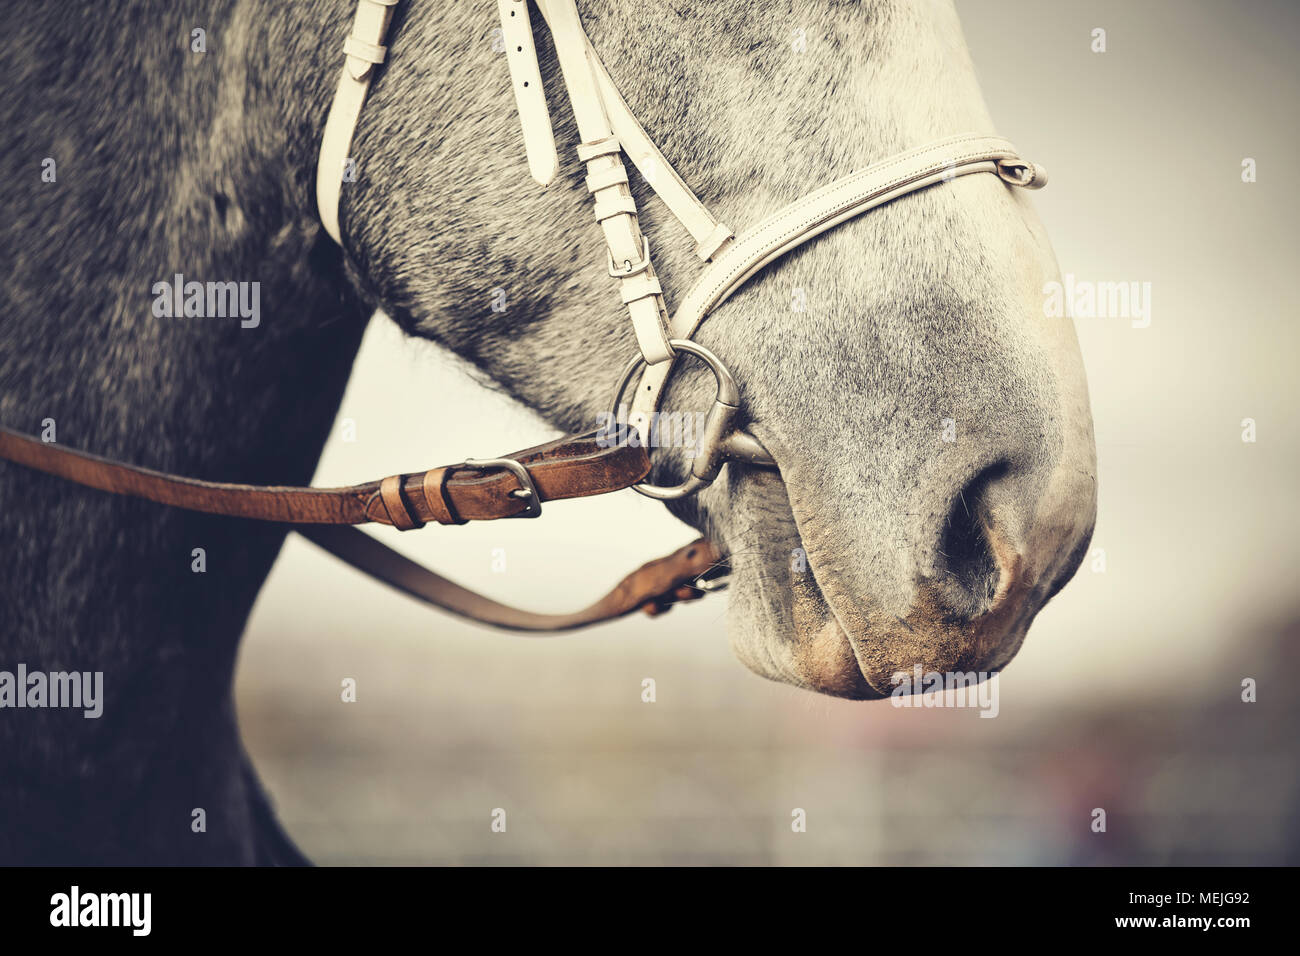 Muzzle of a gray horse in a bridle. Stock Photo